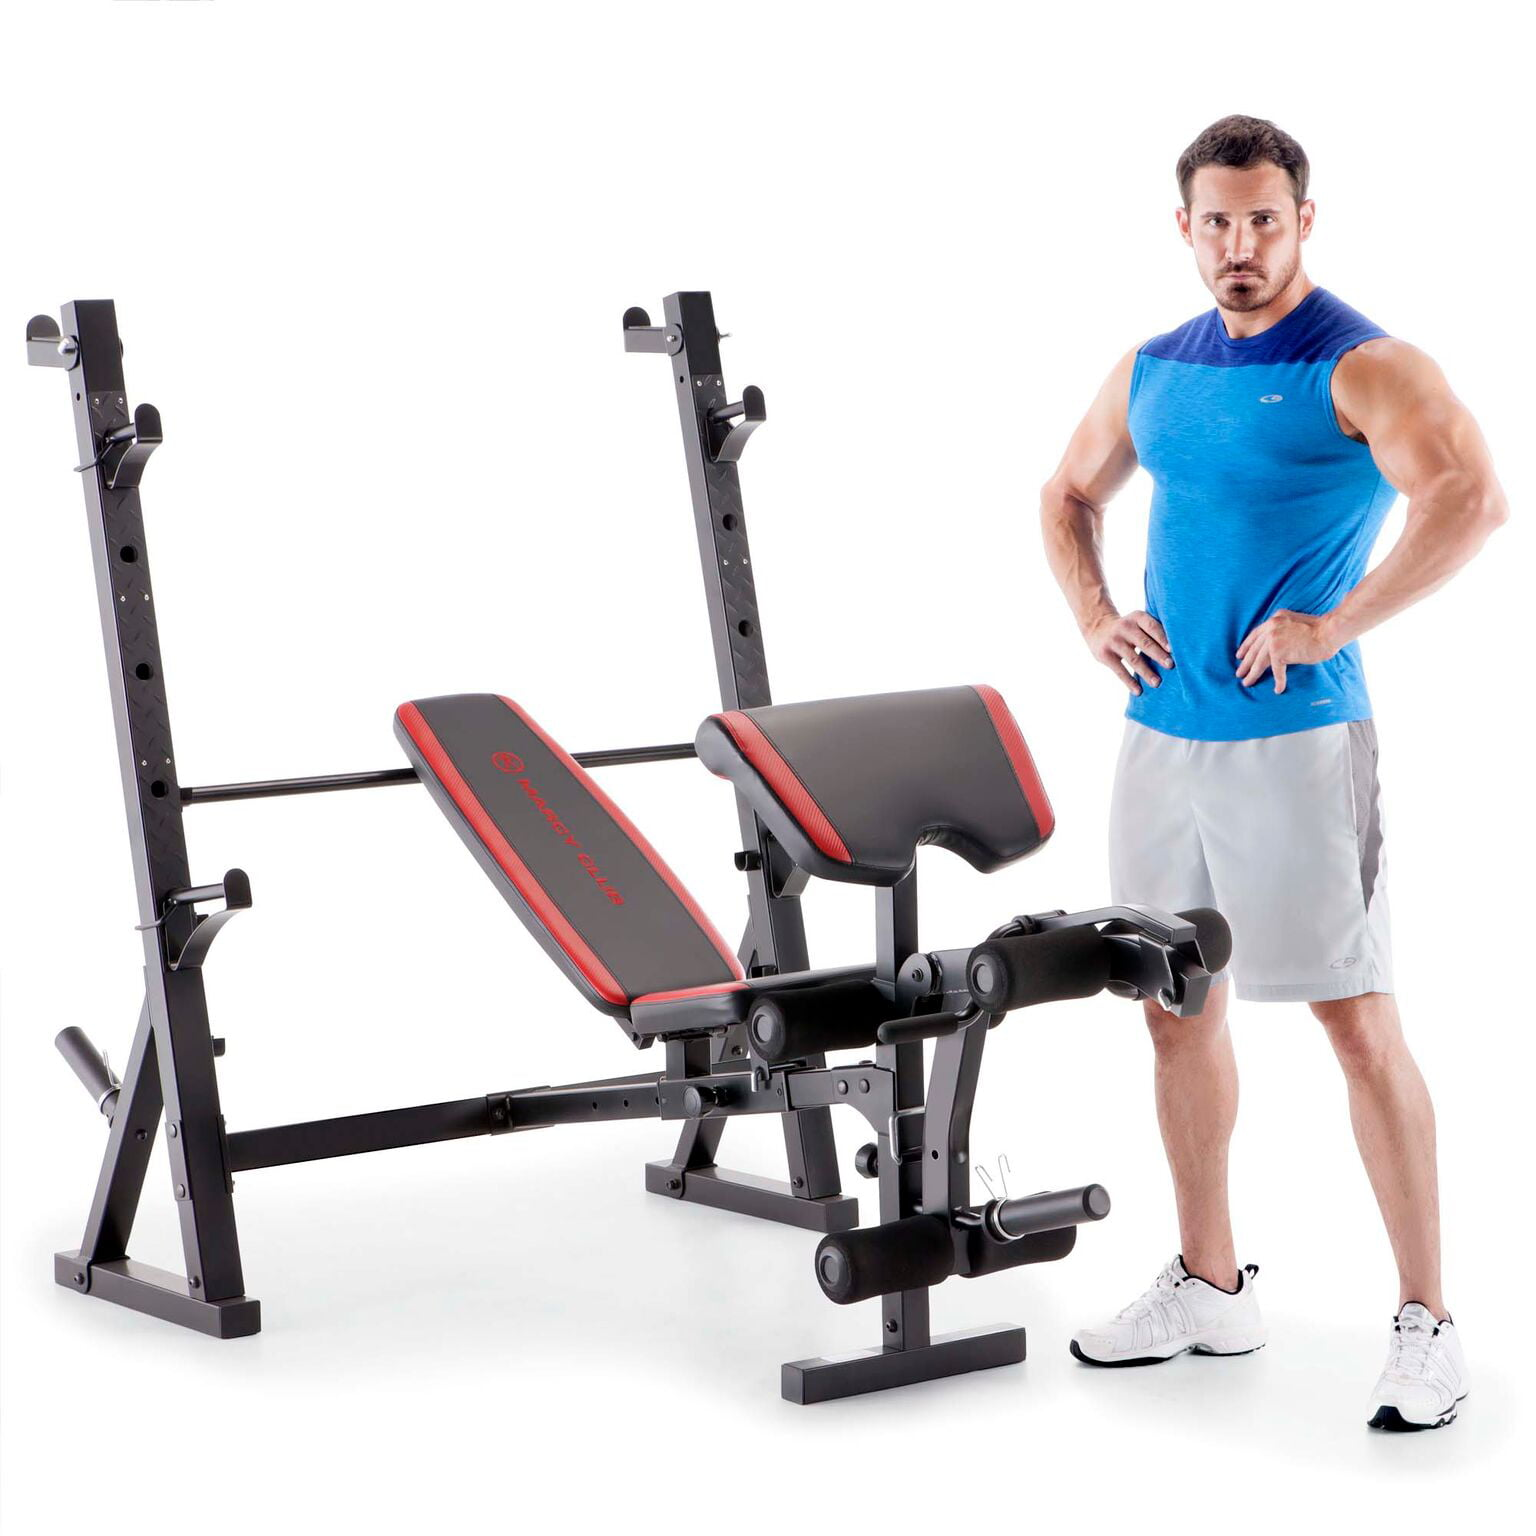 Marcy home gym workout fitness exercise deluxe olympic weight